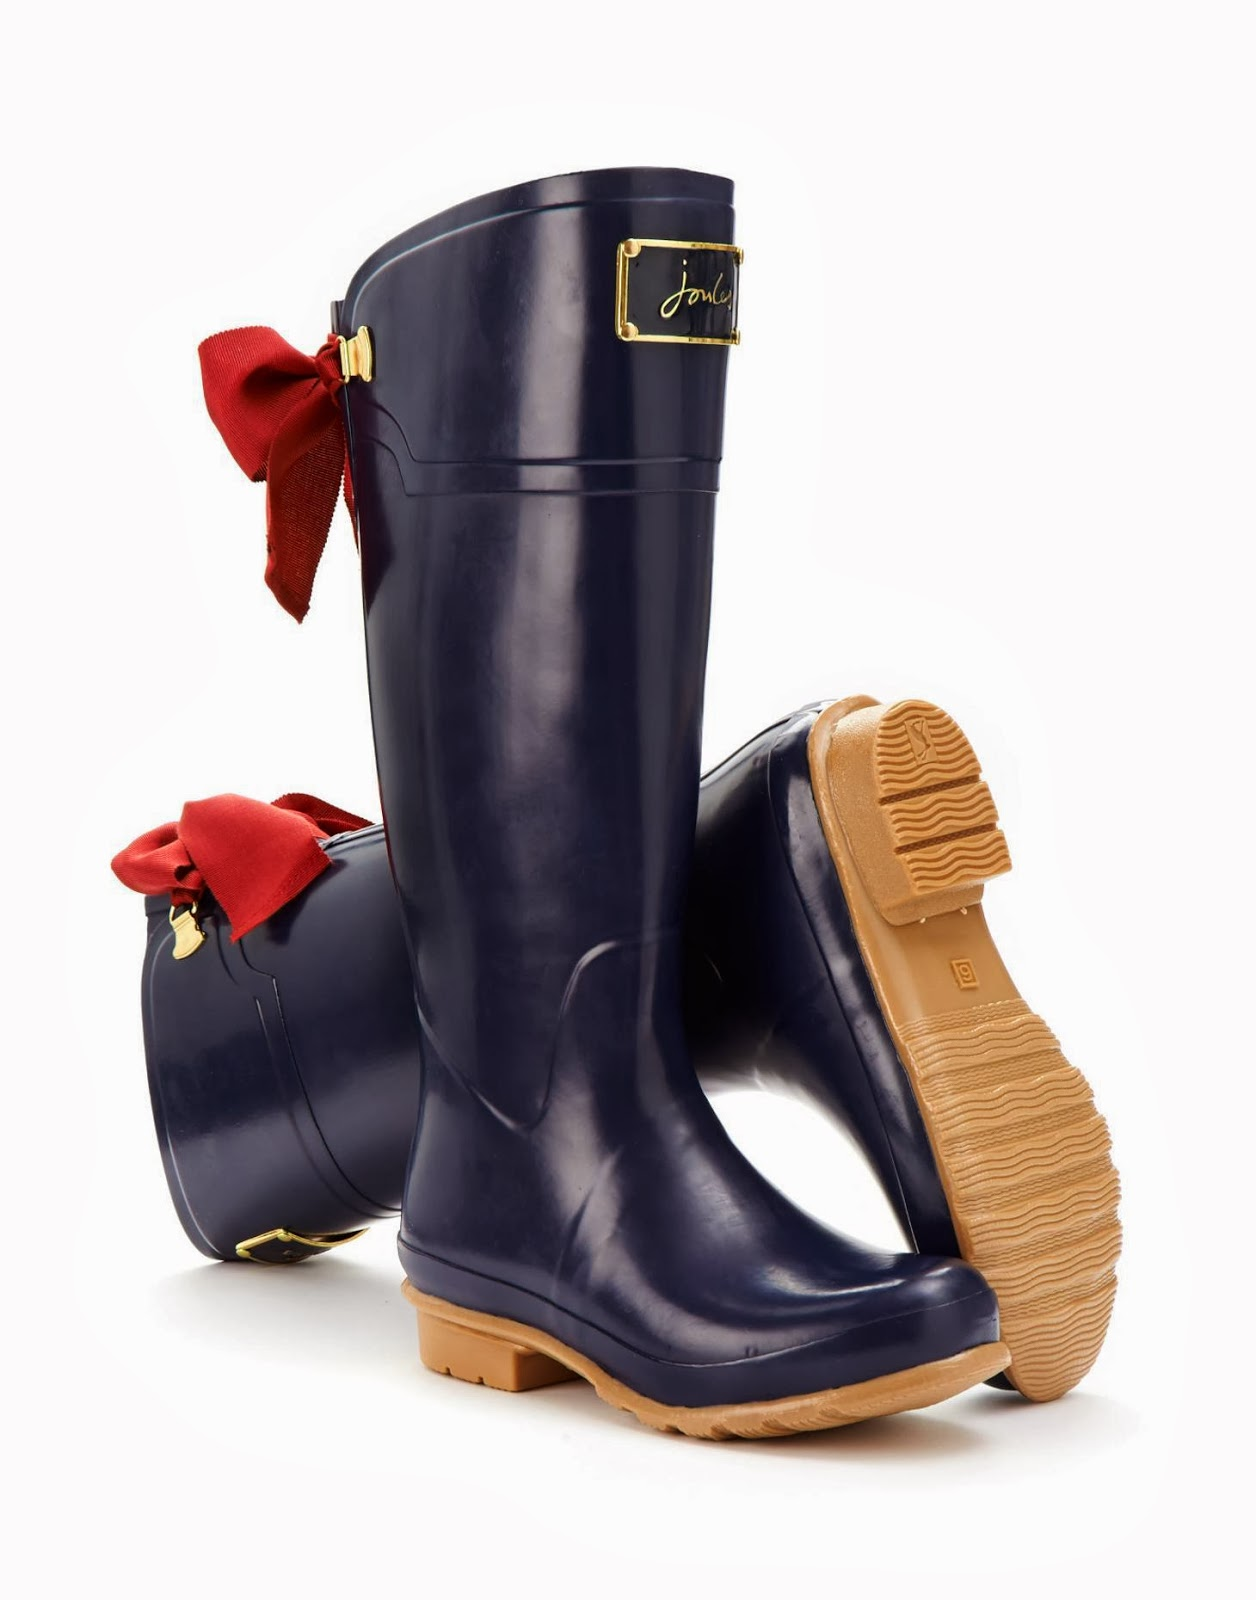 Joules bow wellies